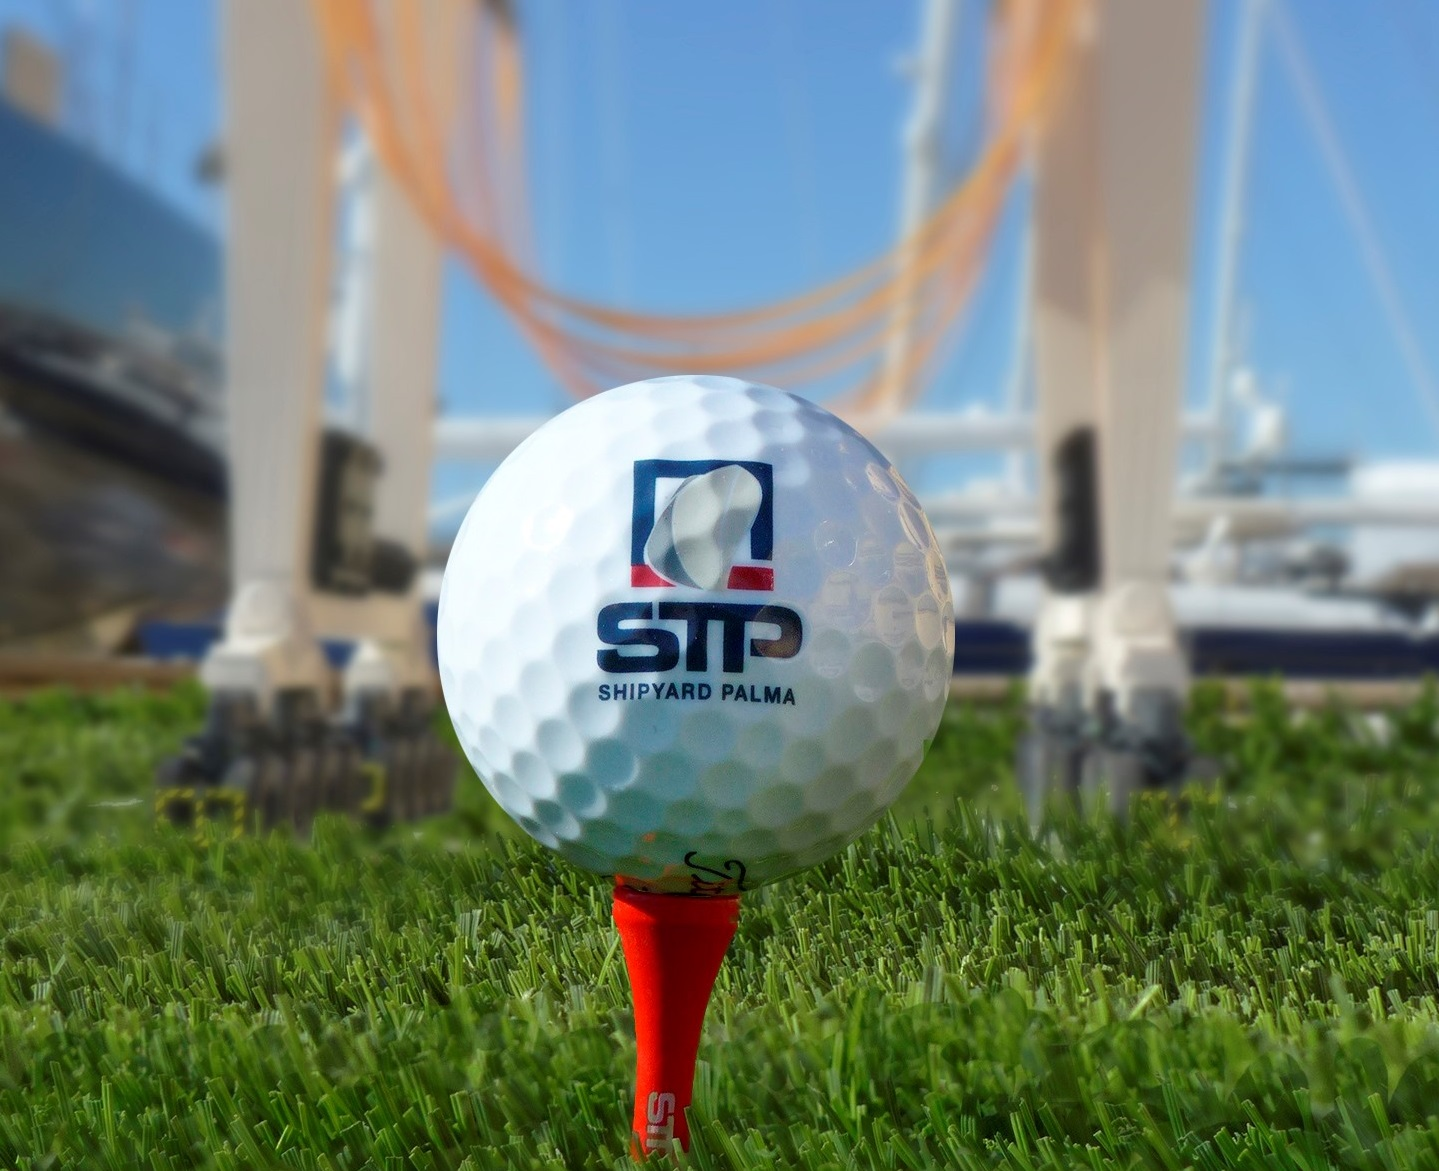 STP Shipyard Palma launches  a charity bar at the most special edition of The Pinmar Golf